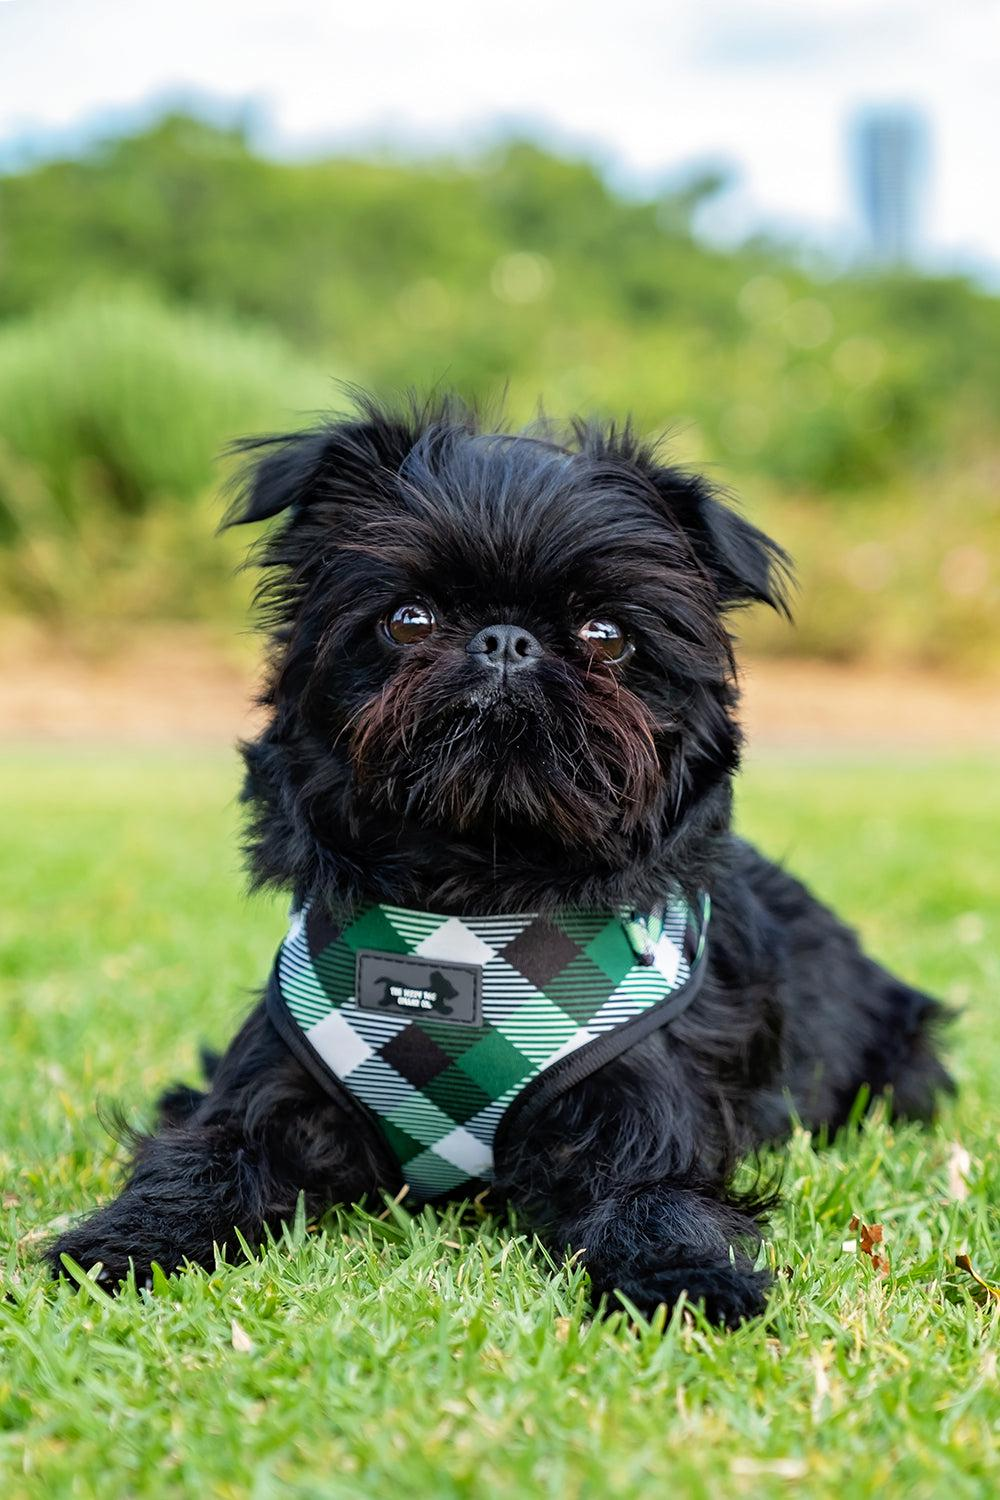 DOG HARNESS - Green Plaid - Neck Adjustable Dog Harness-Harness-Dizzy Dog Collars